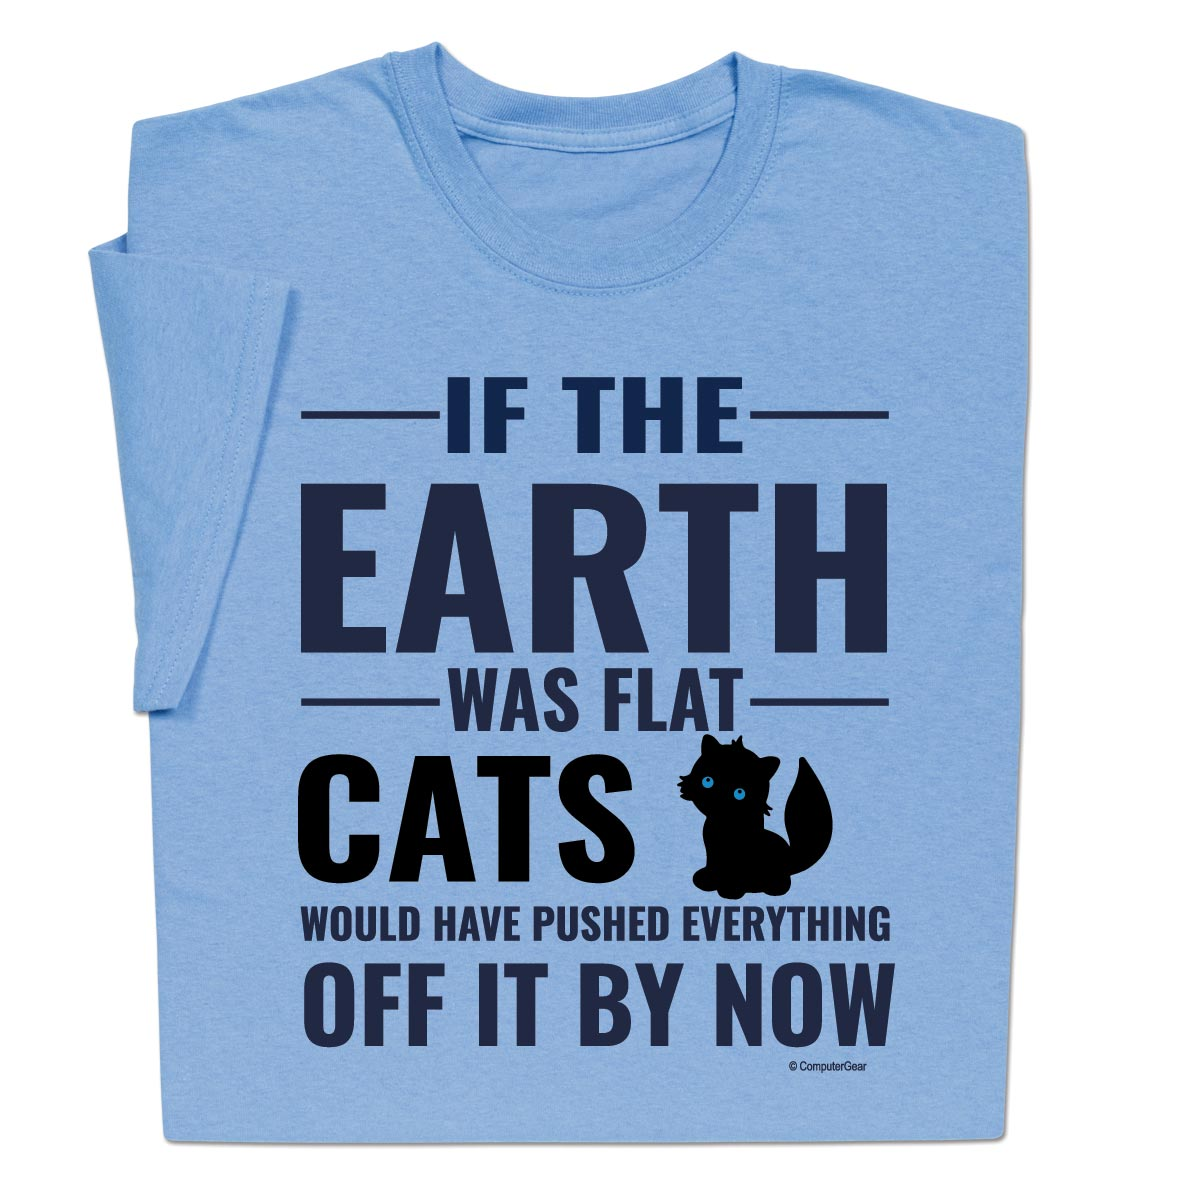 Flat Earth Cats Funny T-Shirt